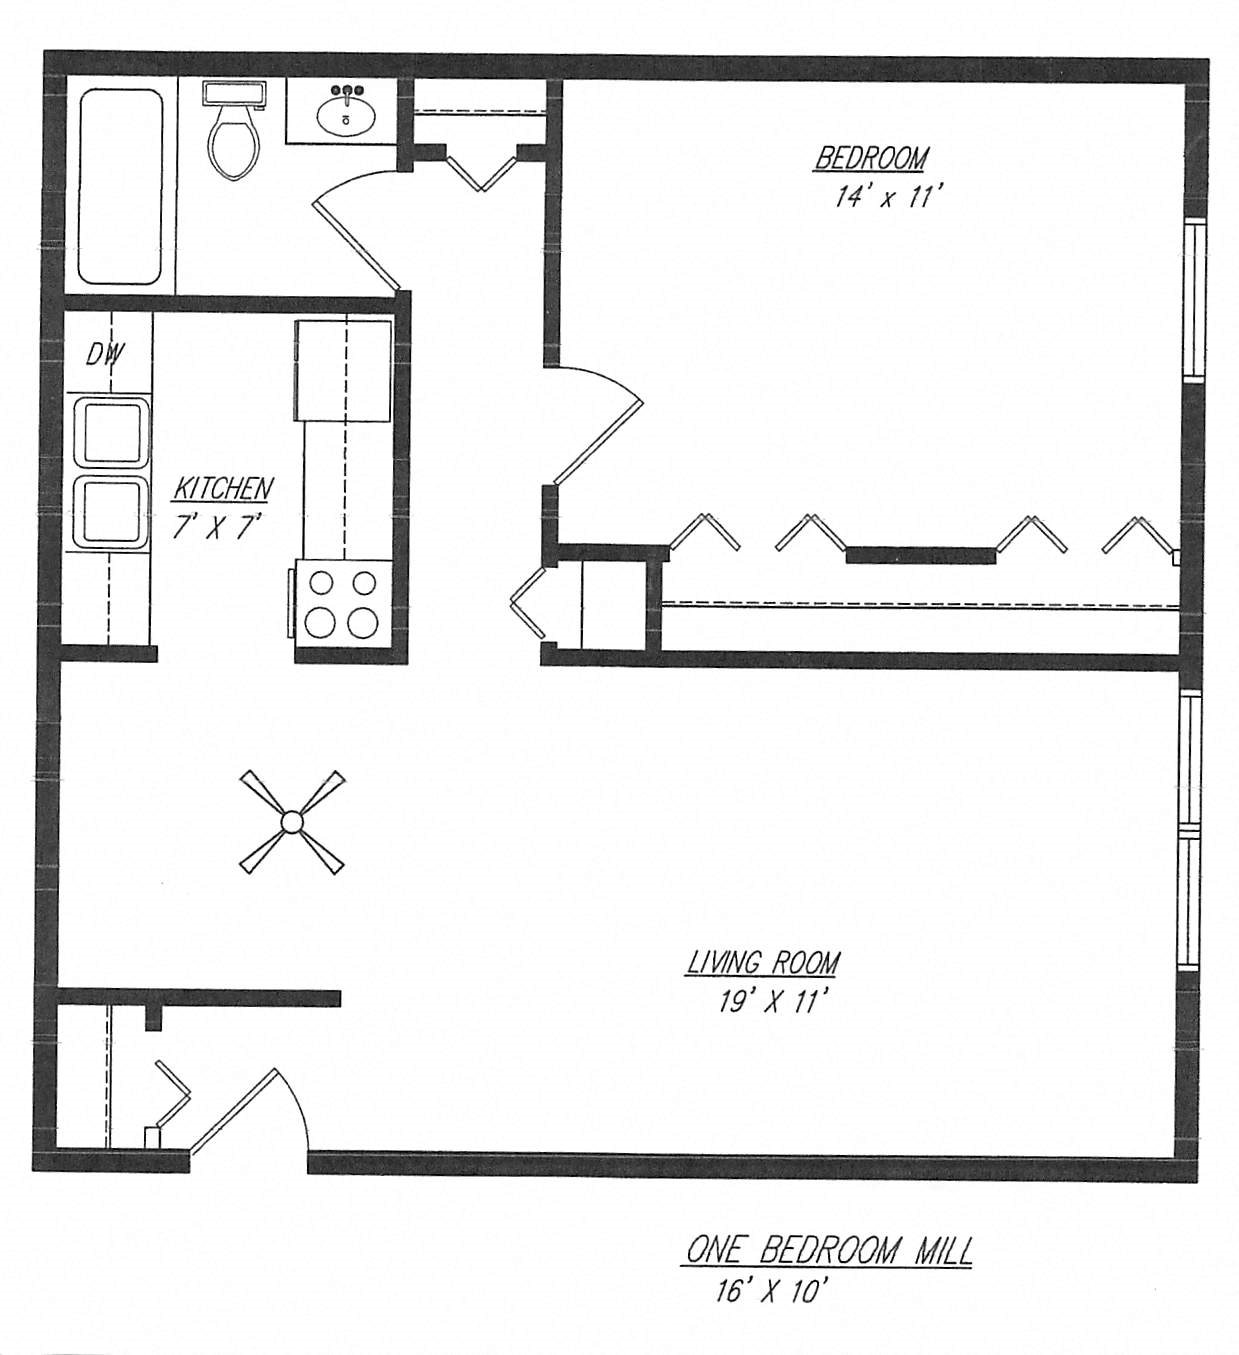 Mill - One Bedroom Floor Plan 1